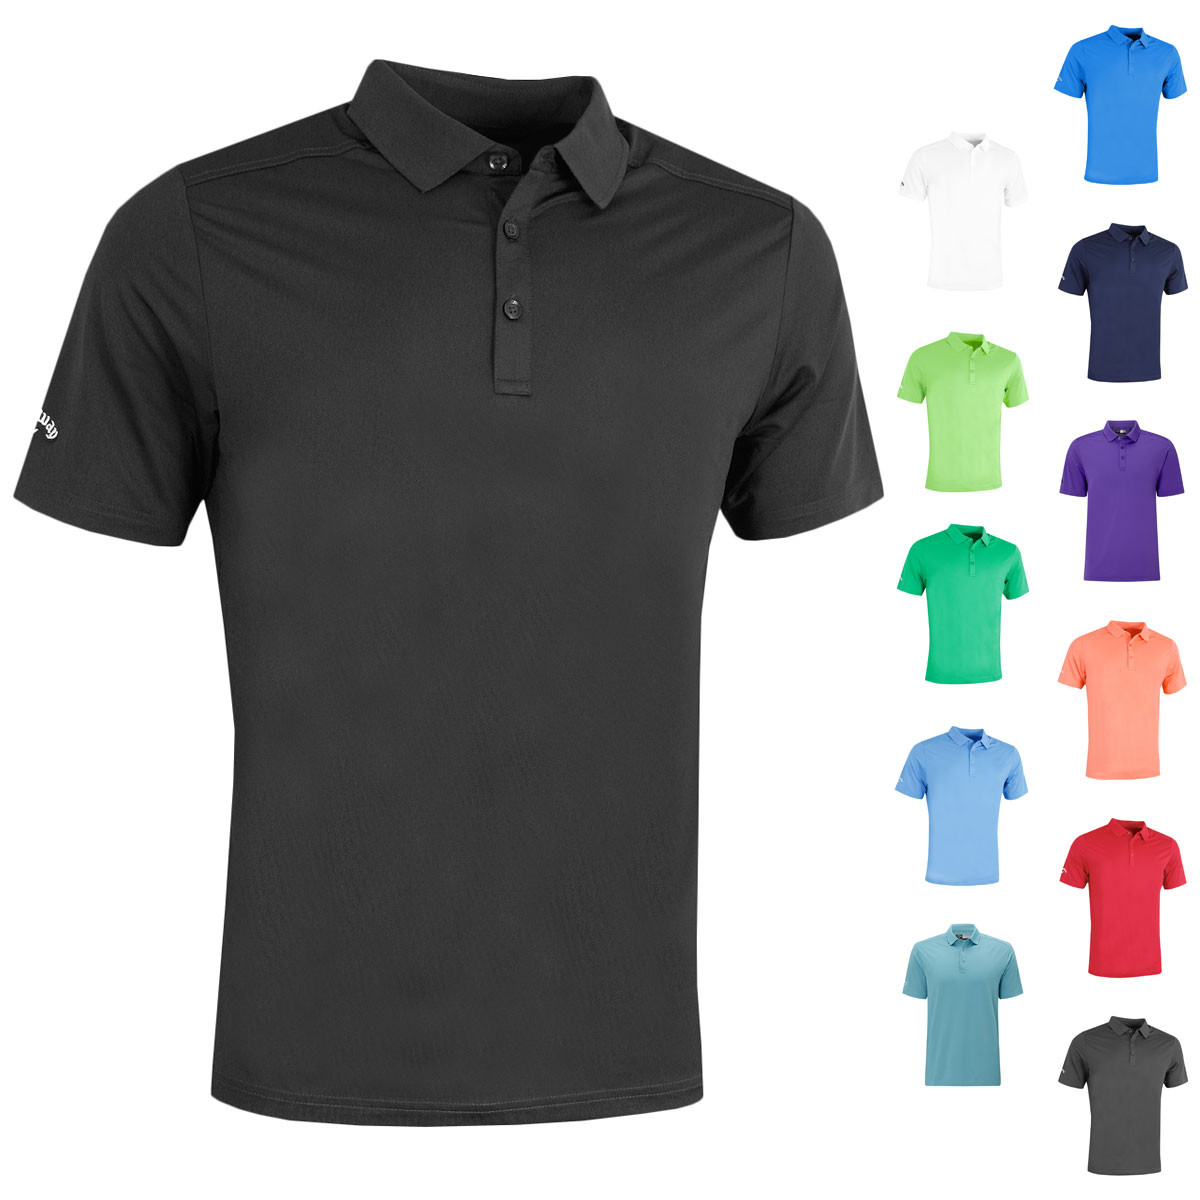 b72987cf SHARE THIS ITEM WITH YOUR FRIENDS. Watch video Size Guide. Description;  Technology; Reviews0. Description. The Callaway Golf Mens 2018 Hex Opti  Stretch Polo ...